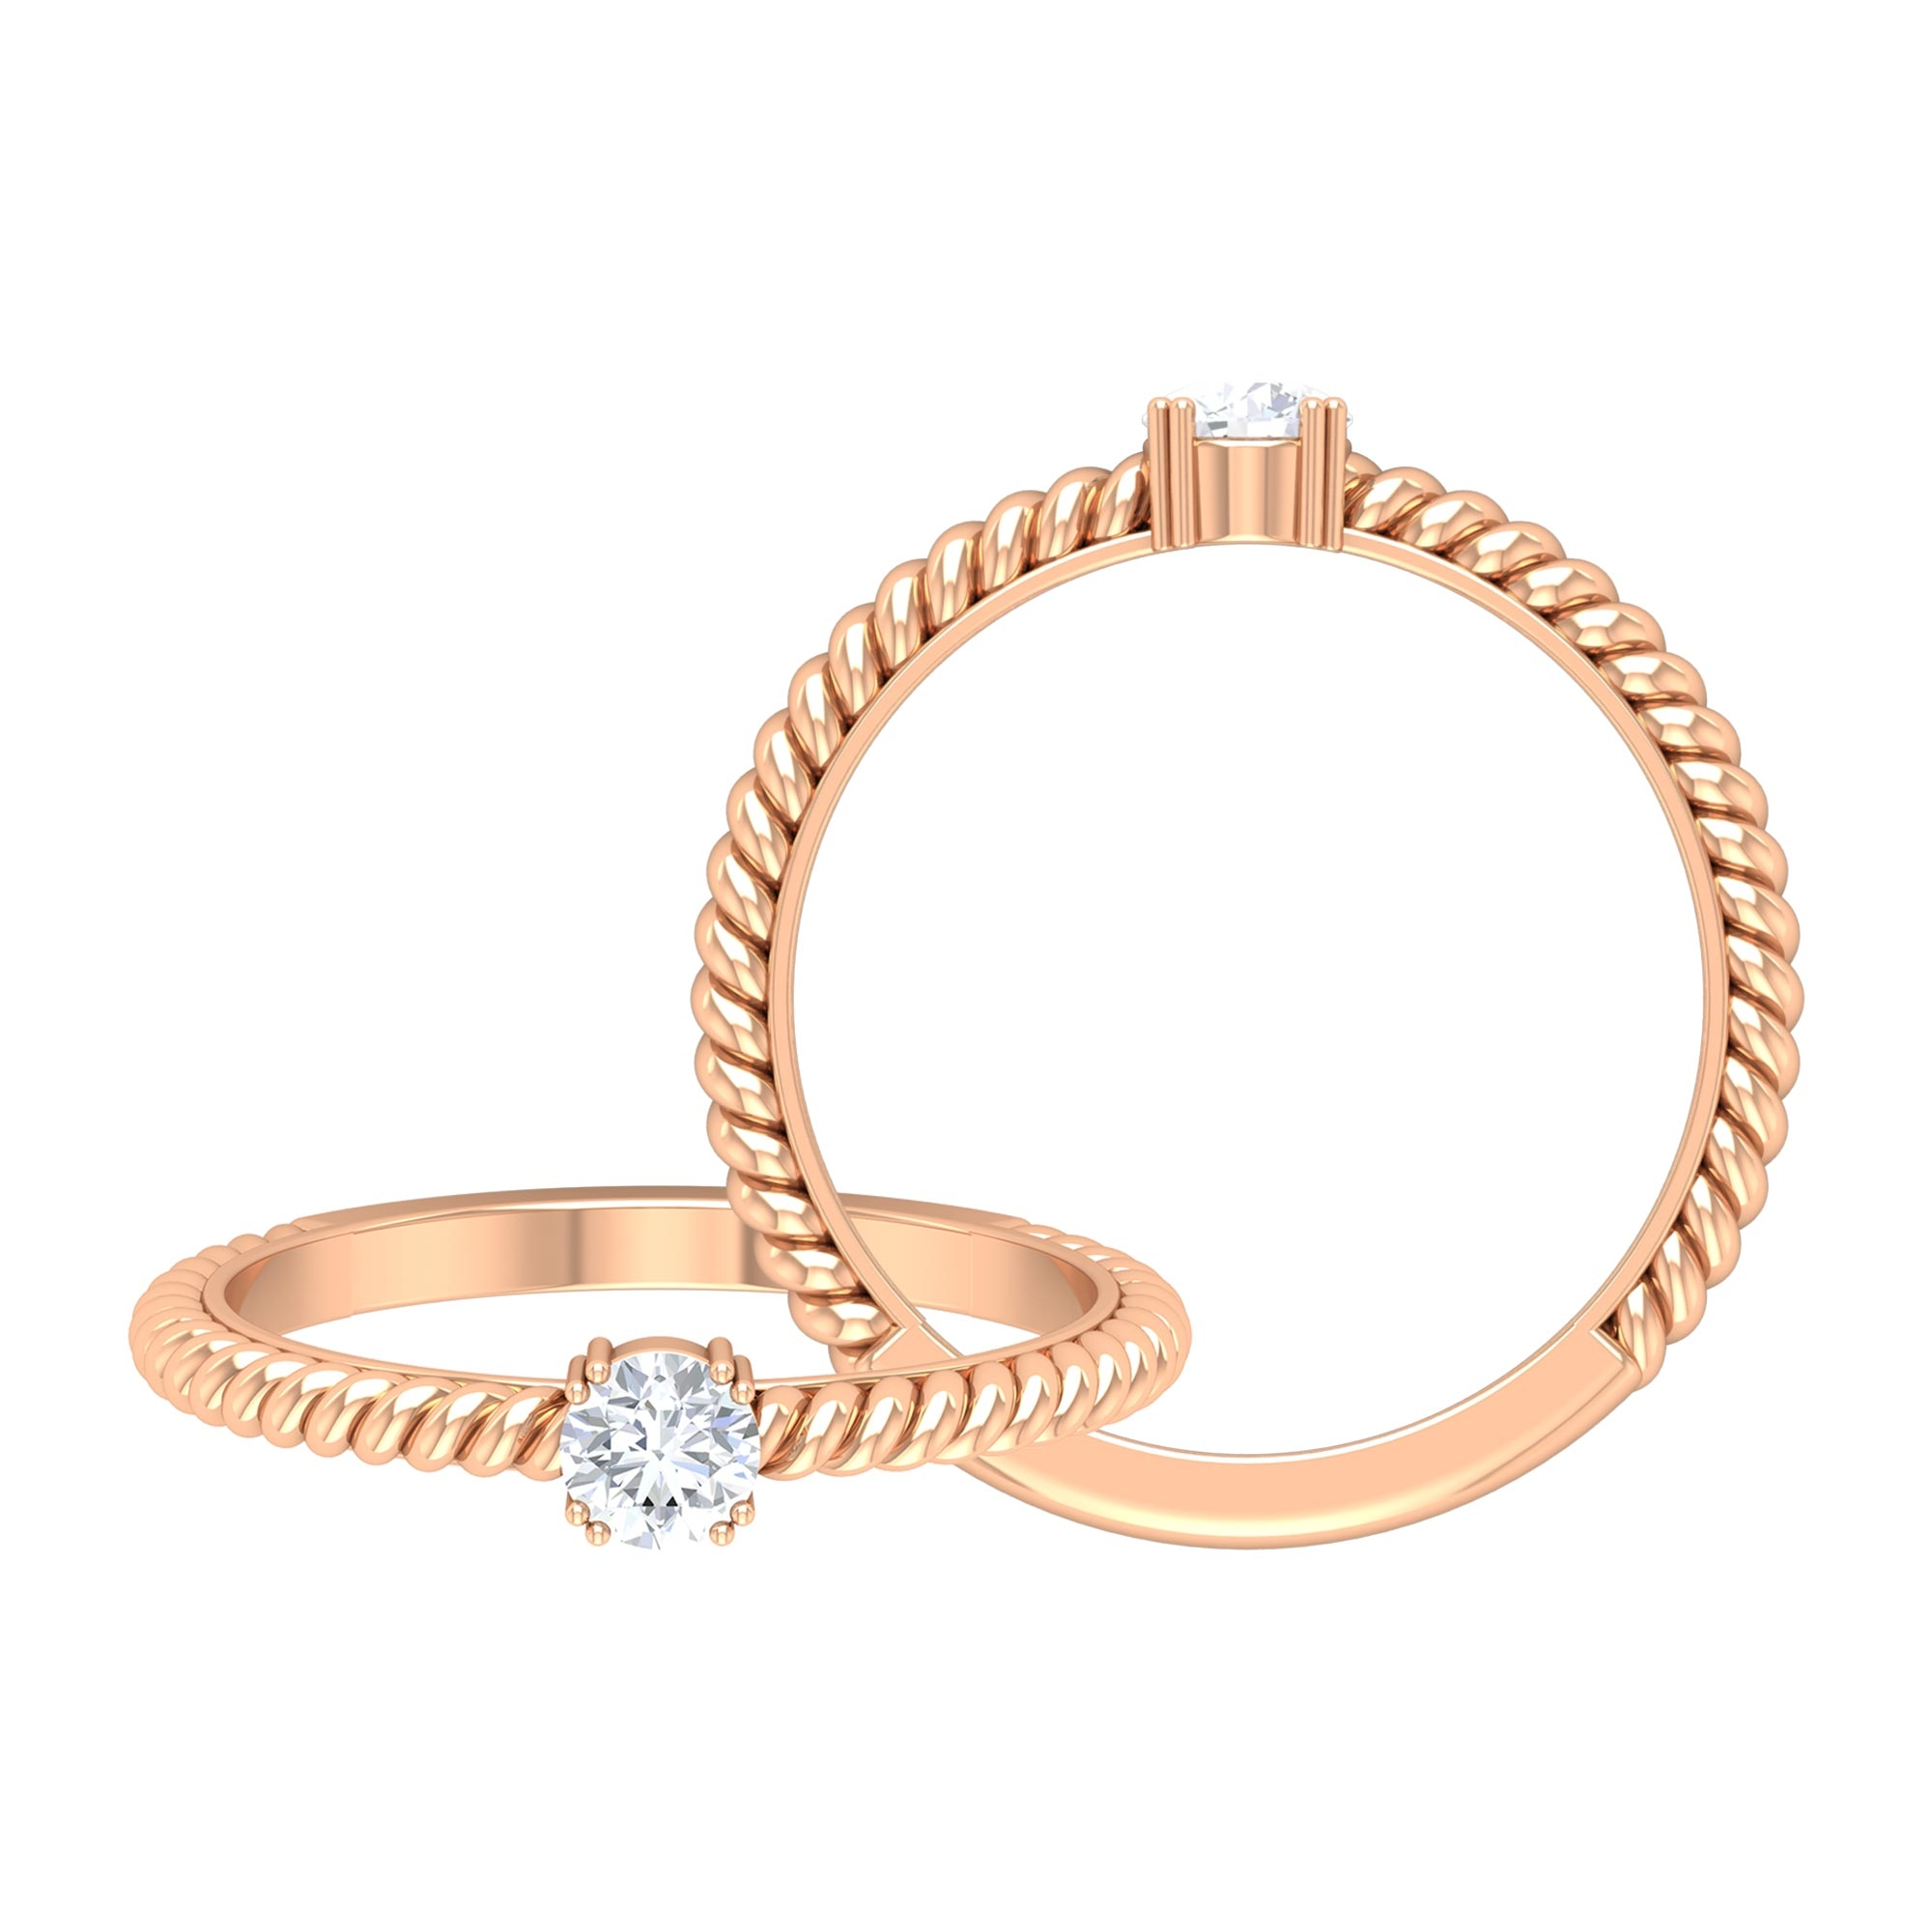 4 MM Round Cut Diamond Solitaire Ring in Double Prong Setting with Twisted Rope Details